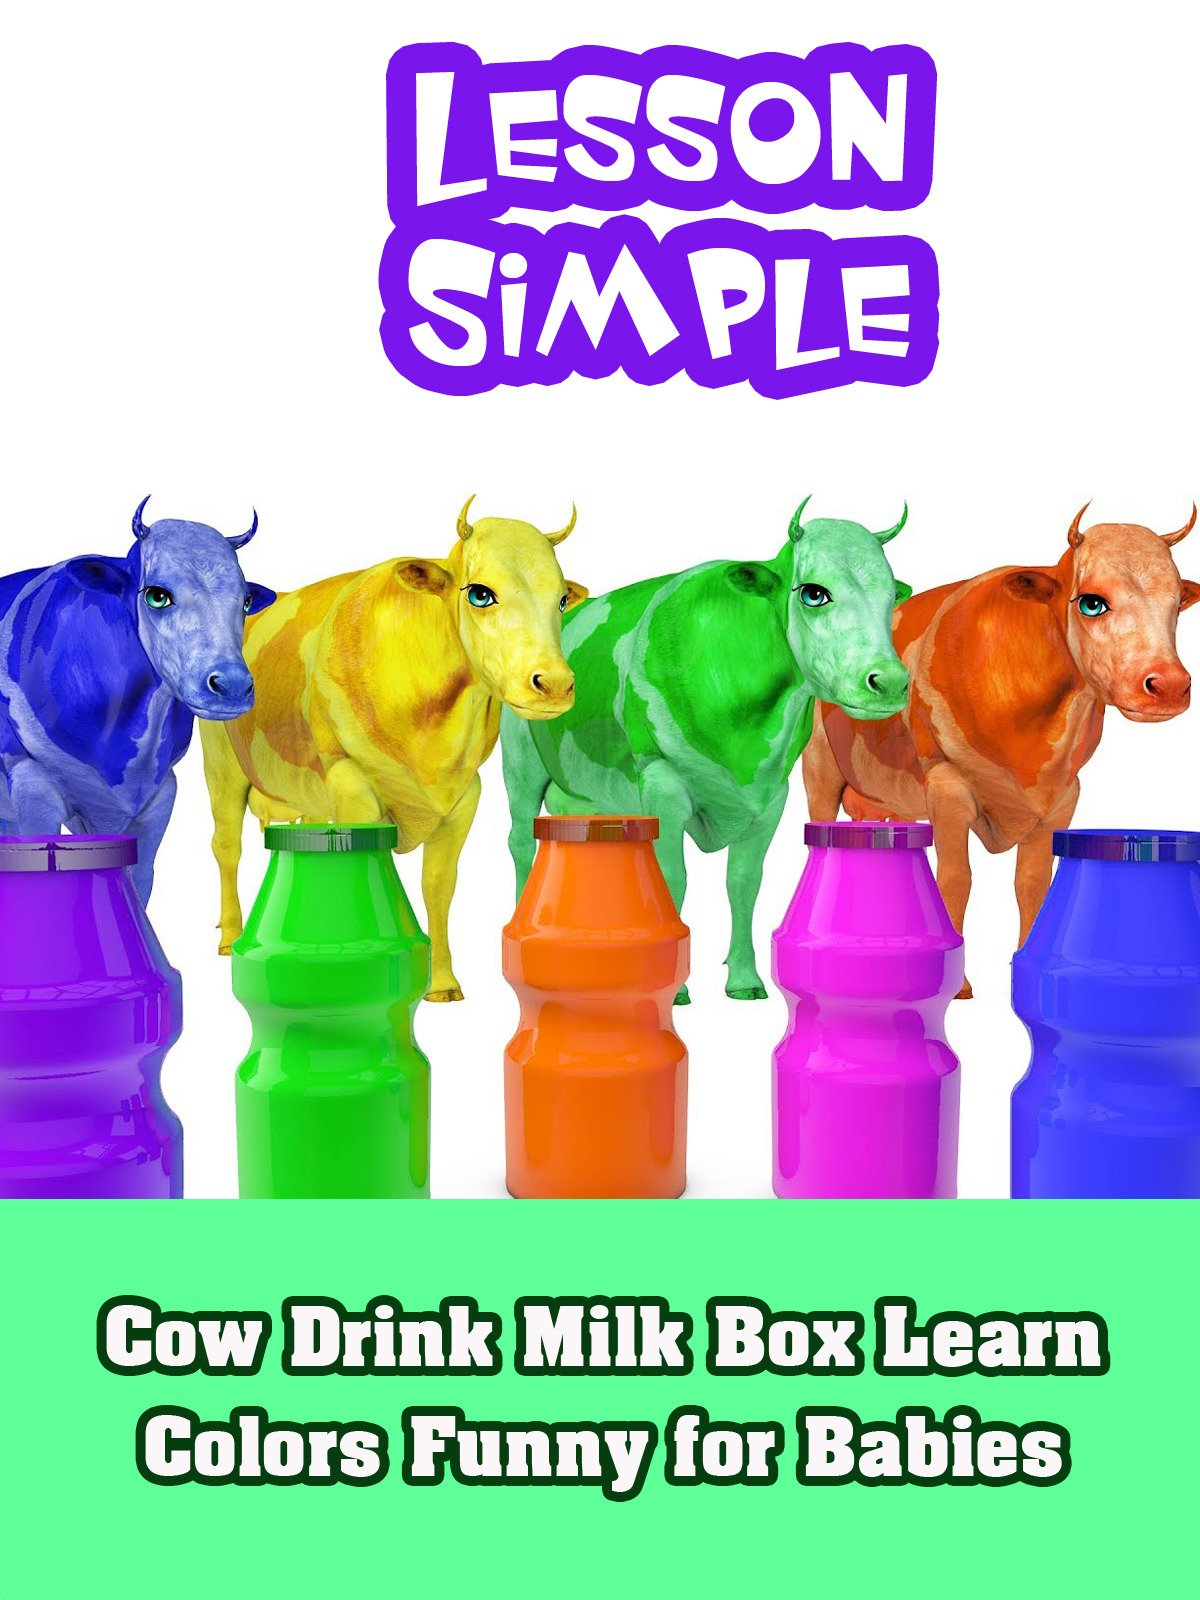 Cow Drink Milk Box Learn Colors Funny for Babies